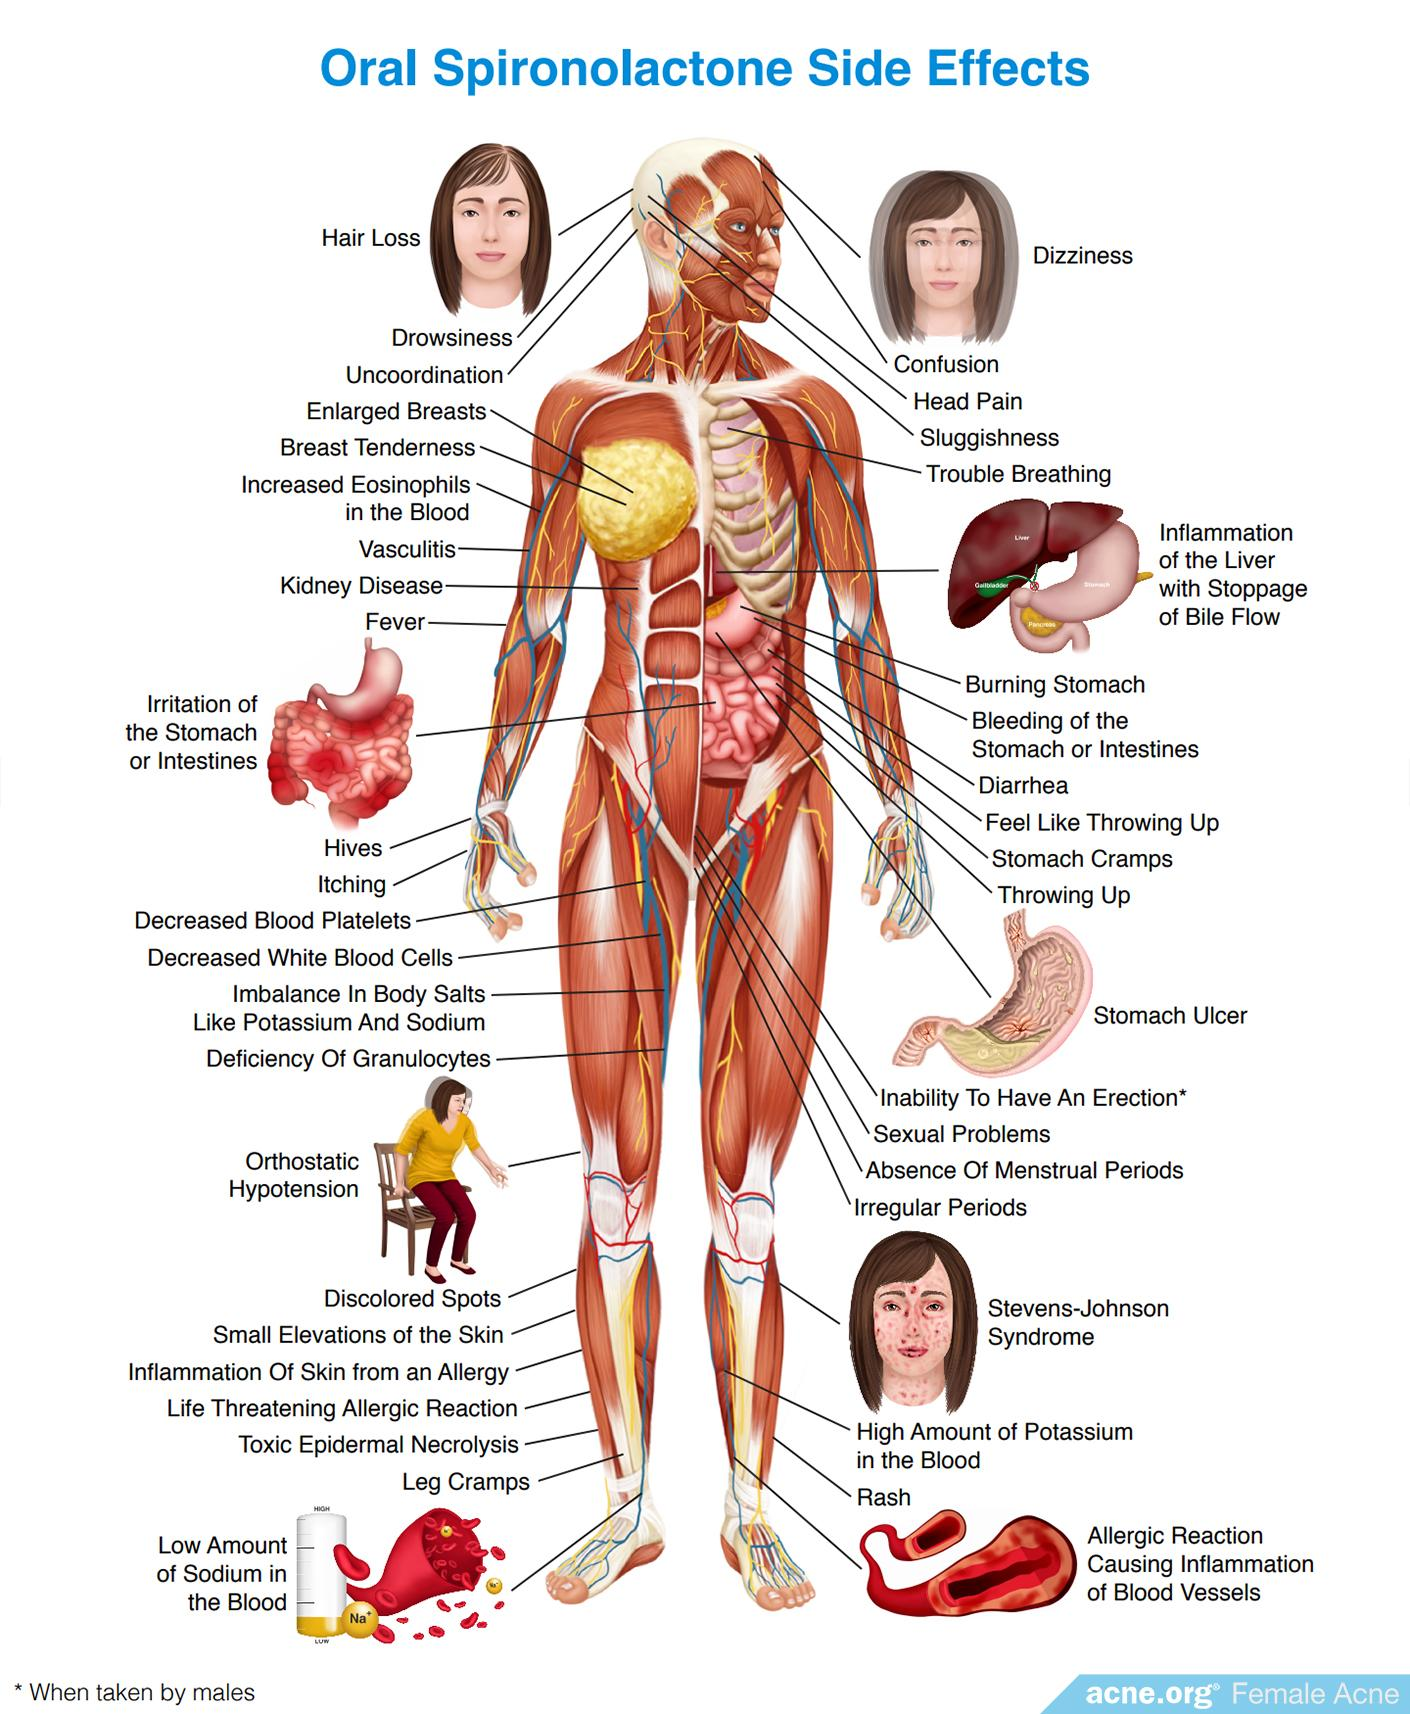 Oral Spironolactone Side Effects